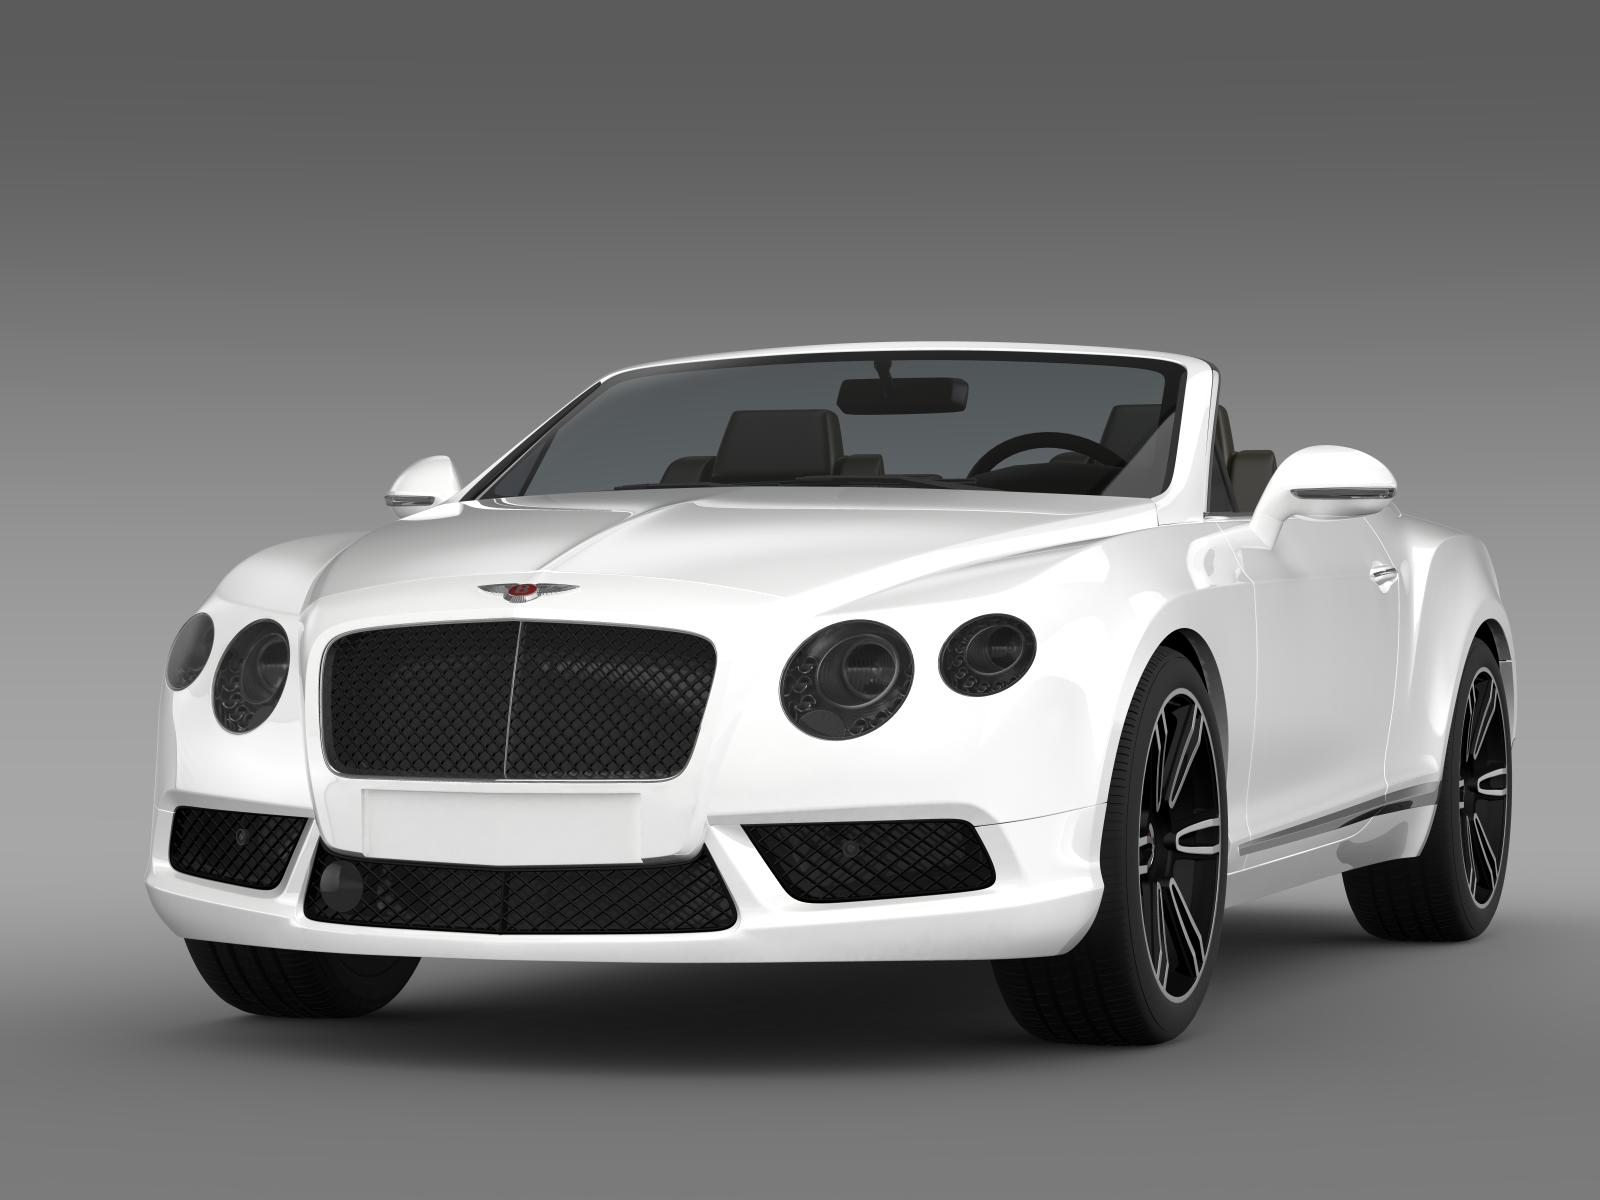 2013 bentley тив GT v8 3d загвар 3ds max fbx c4d lwo ma mb hrc xsi obj 164077